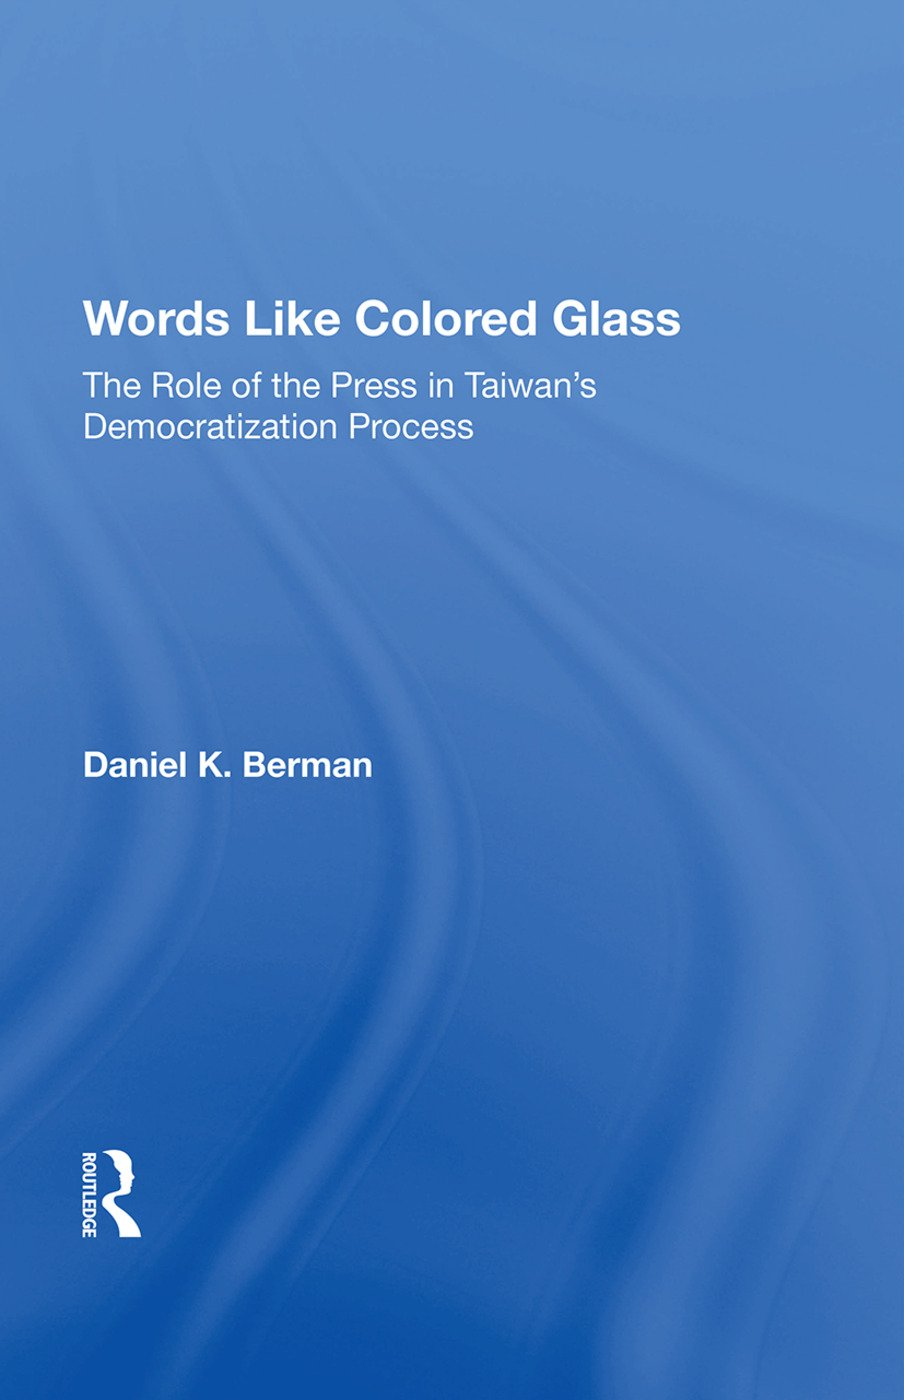 Words Like Colored Glass